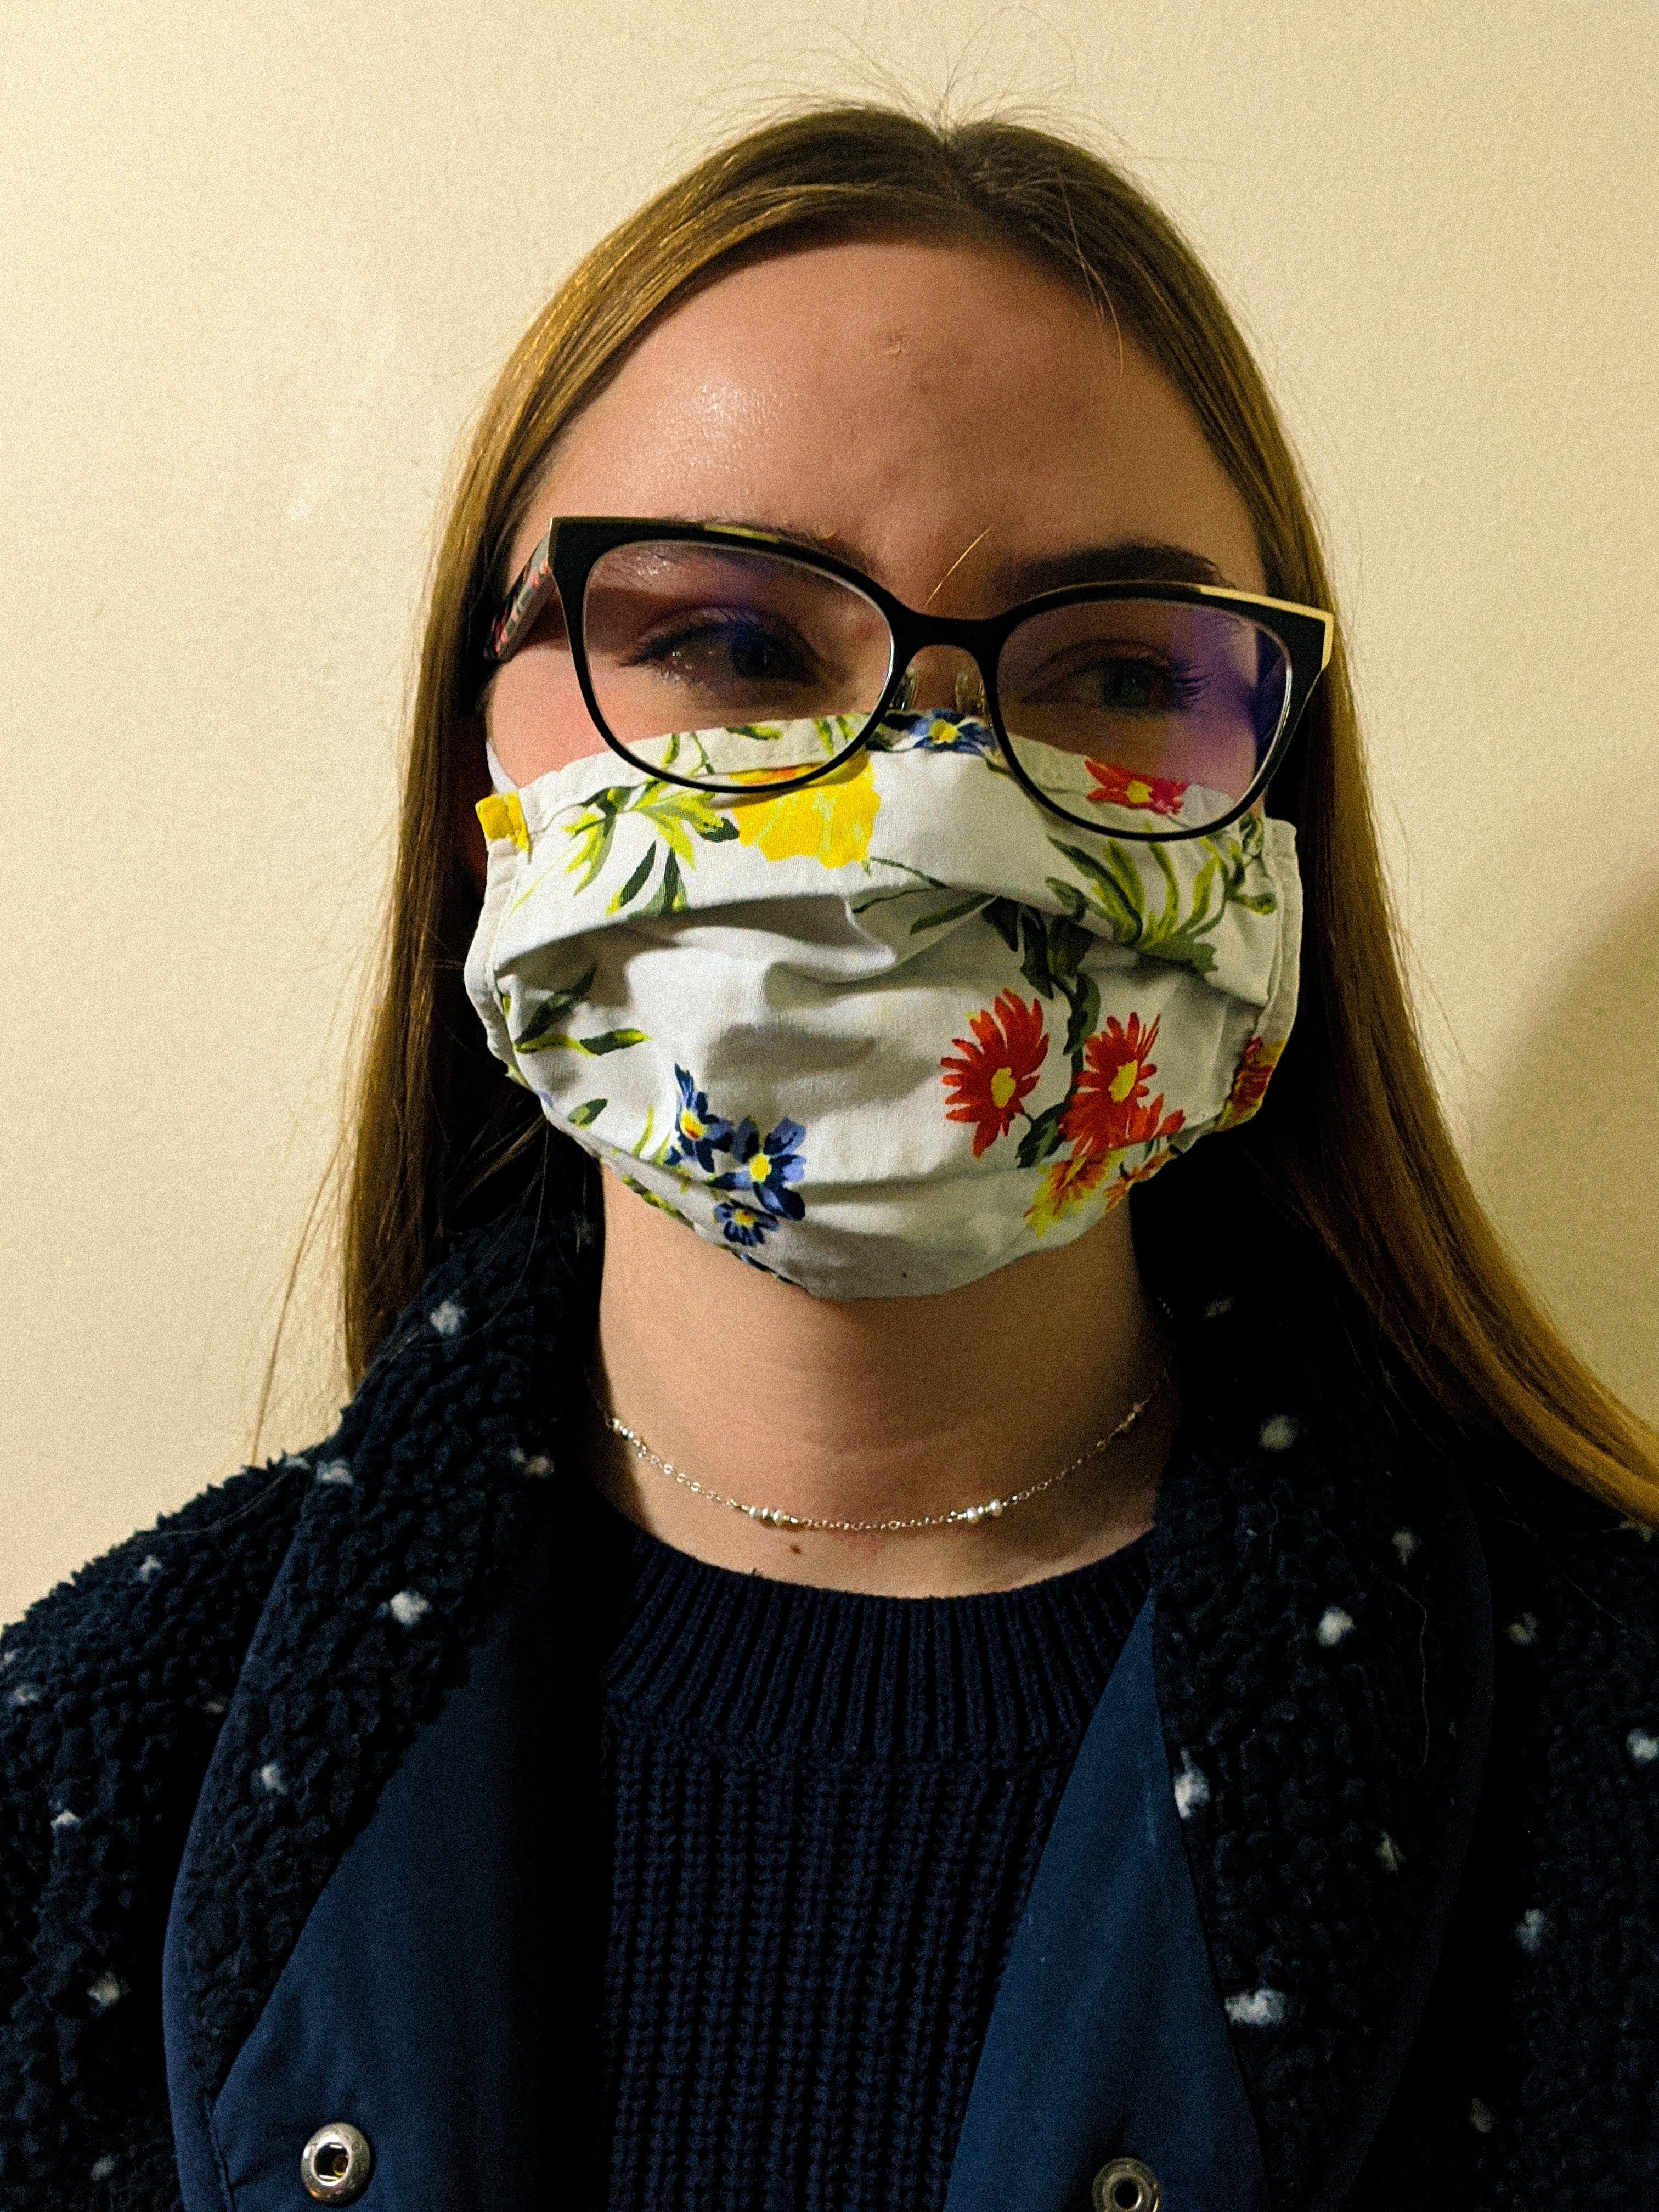 Close-up of white young woman with long hair and glasses, wearing a flowery face mask.